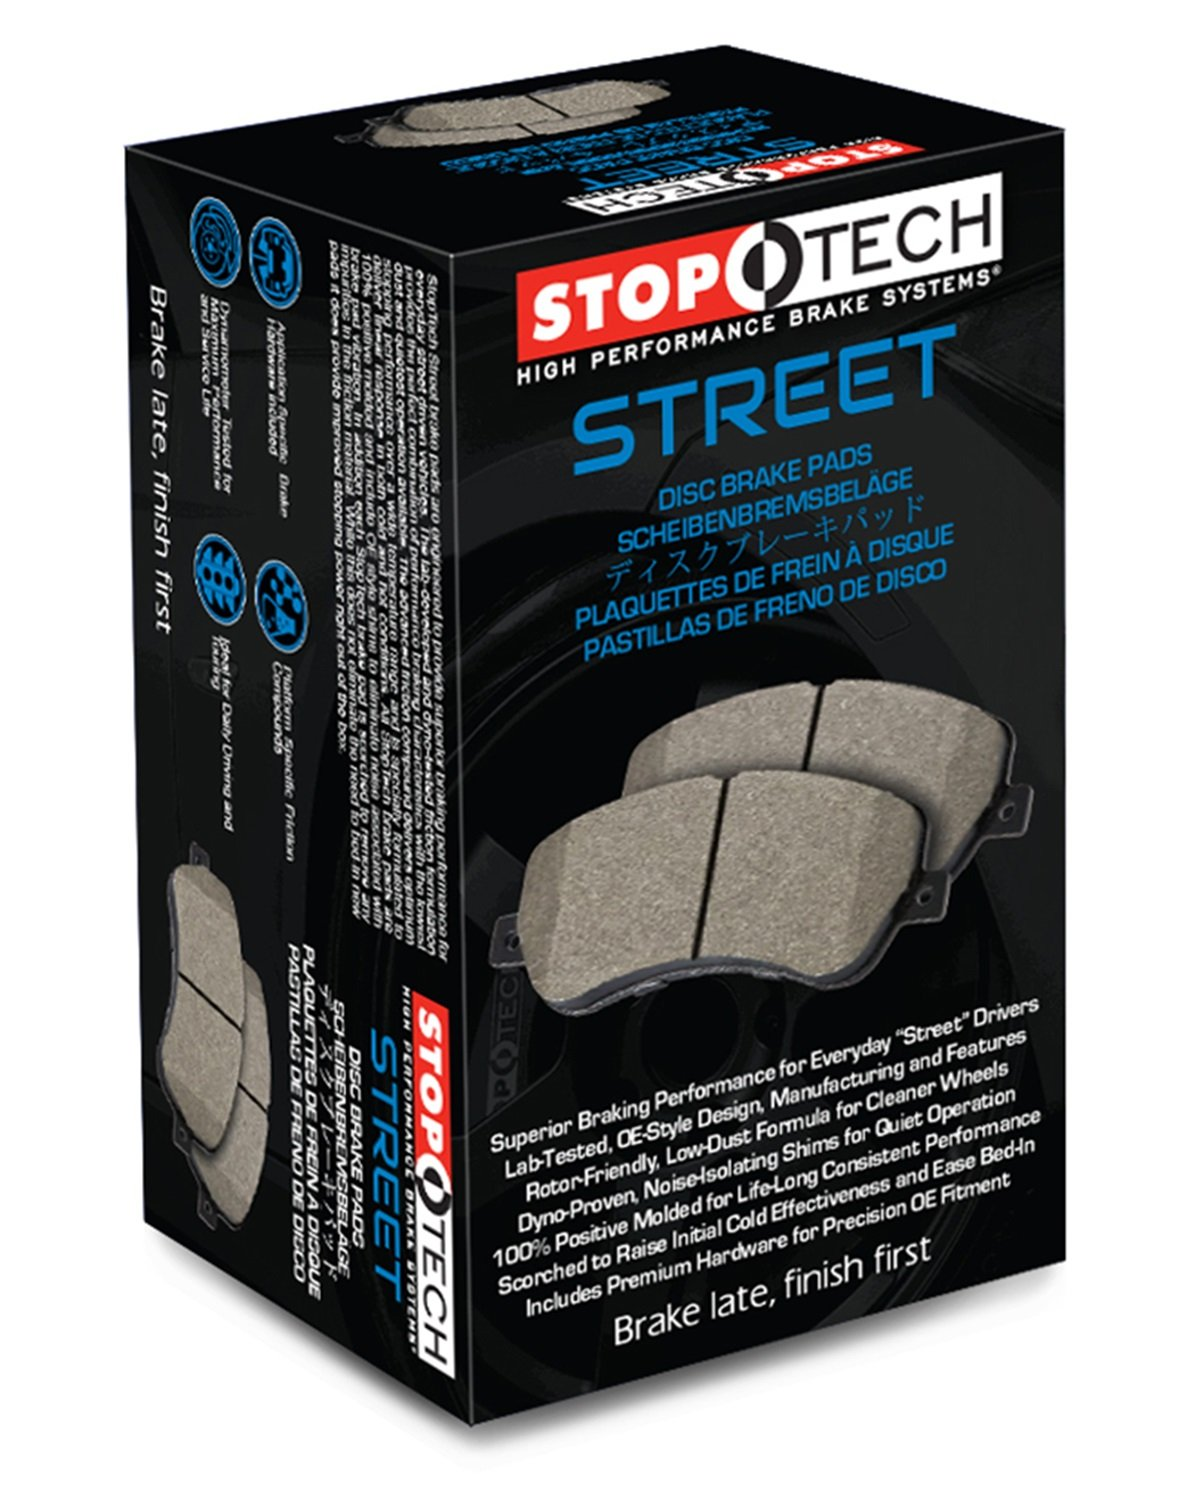 StopTech 308.14302 Street Bremsbelag, Set of 5 von StopTech